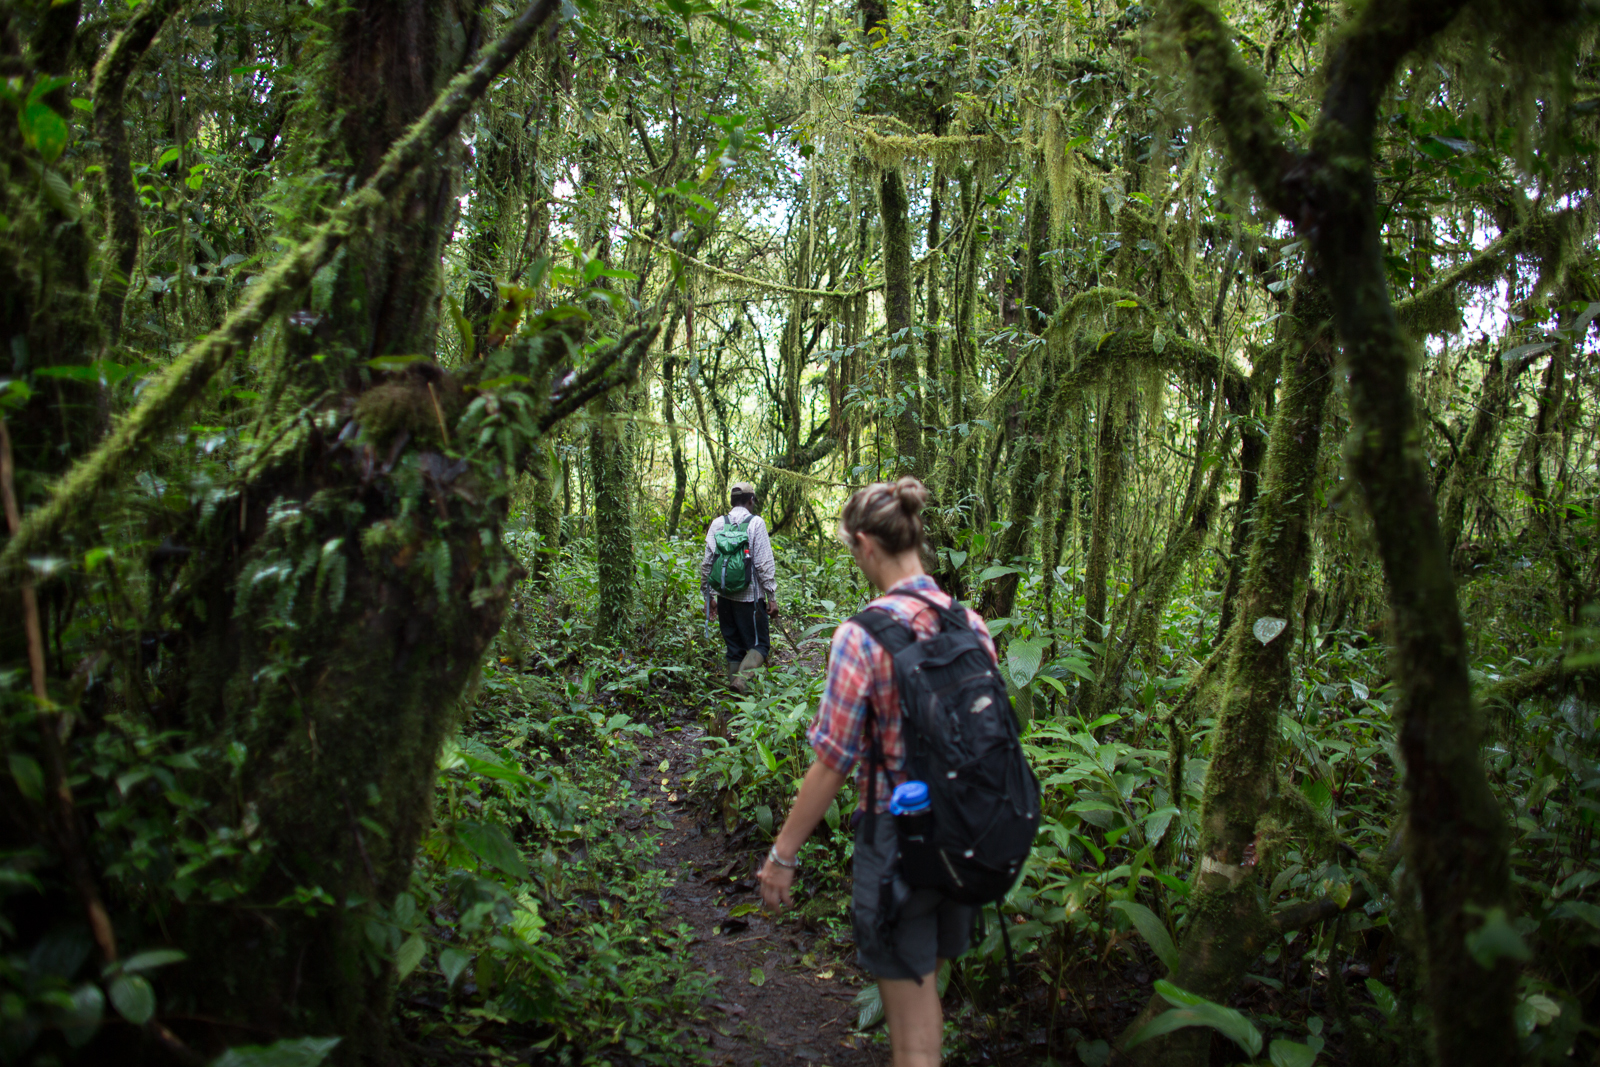 Two people walk on a path through dense green vegetation in the forests of Bioko.